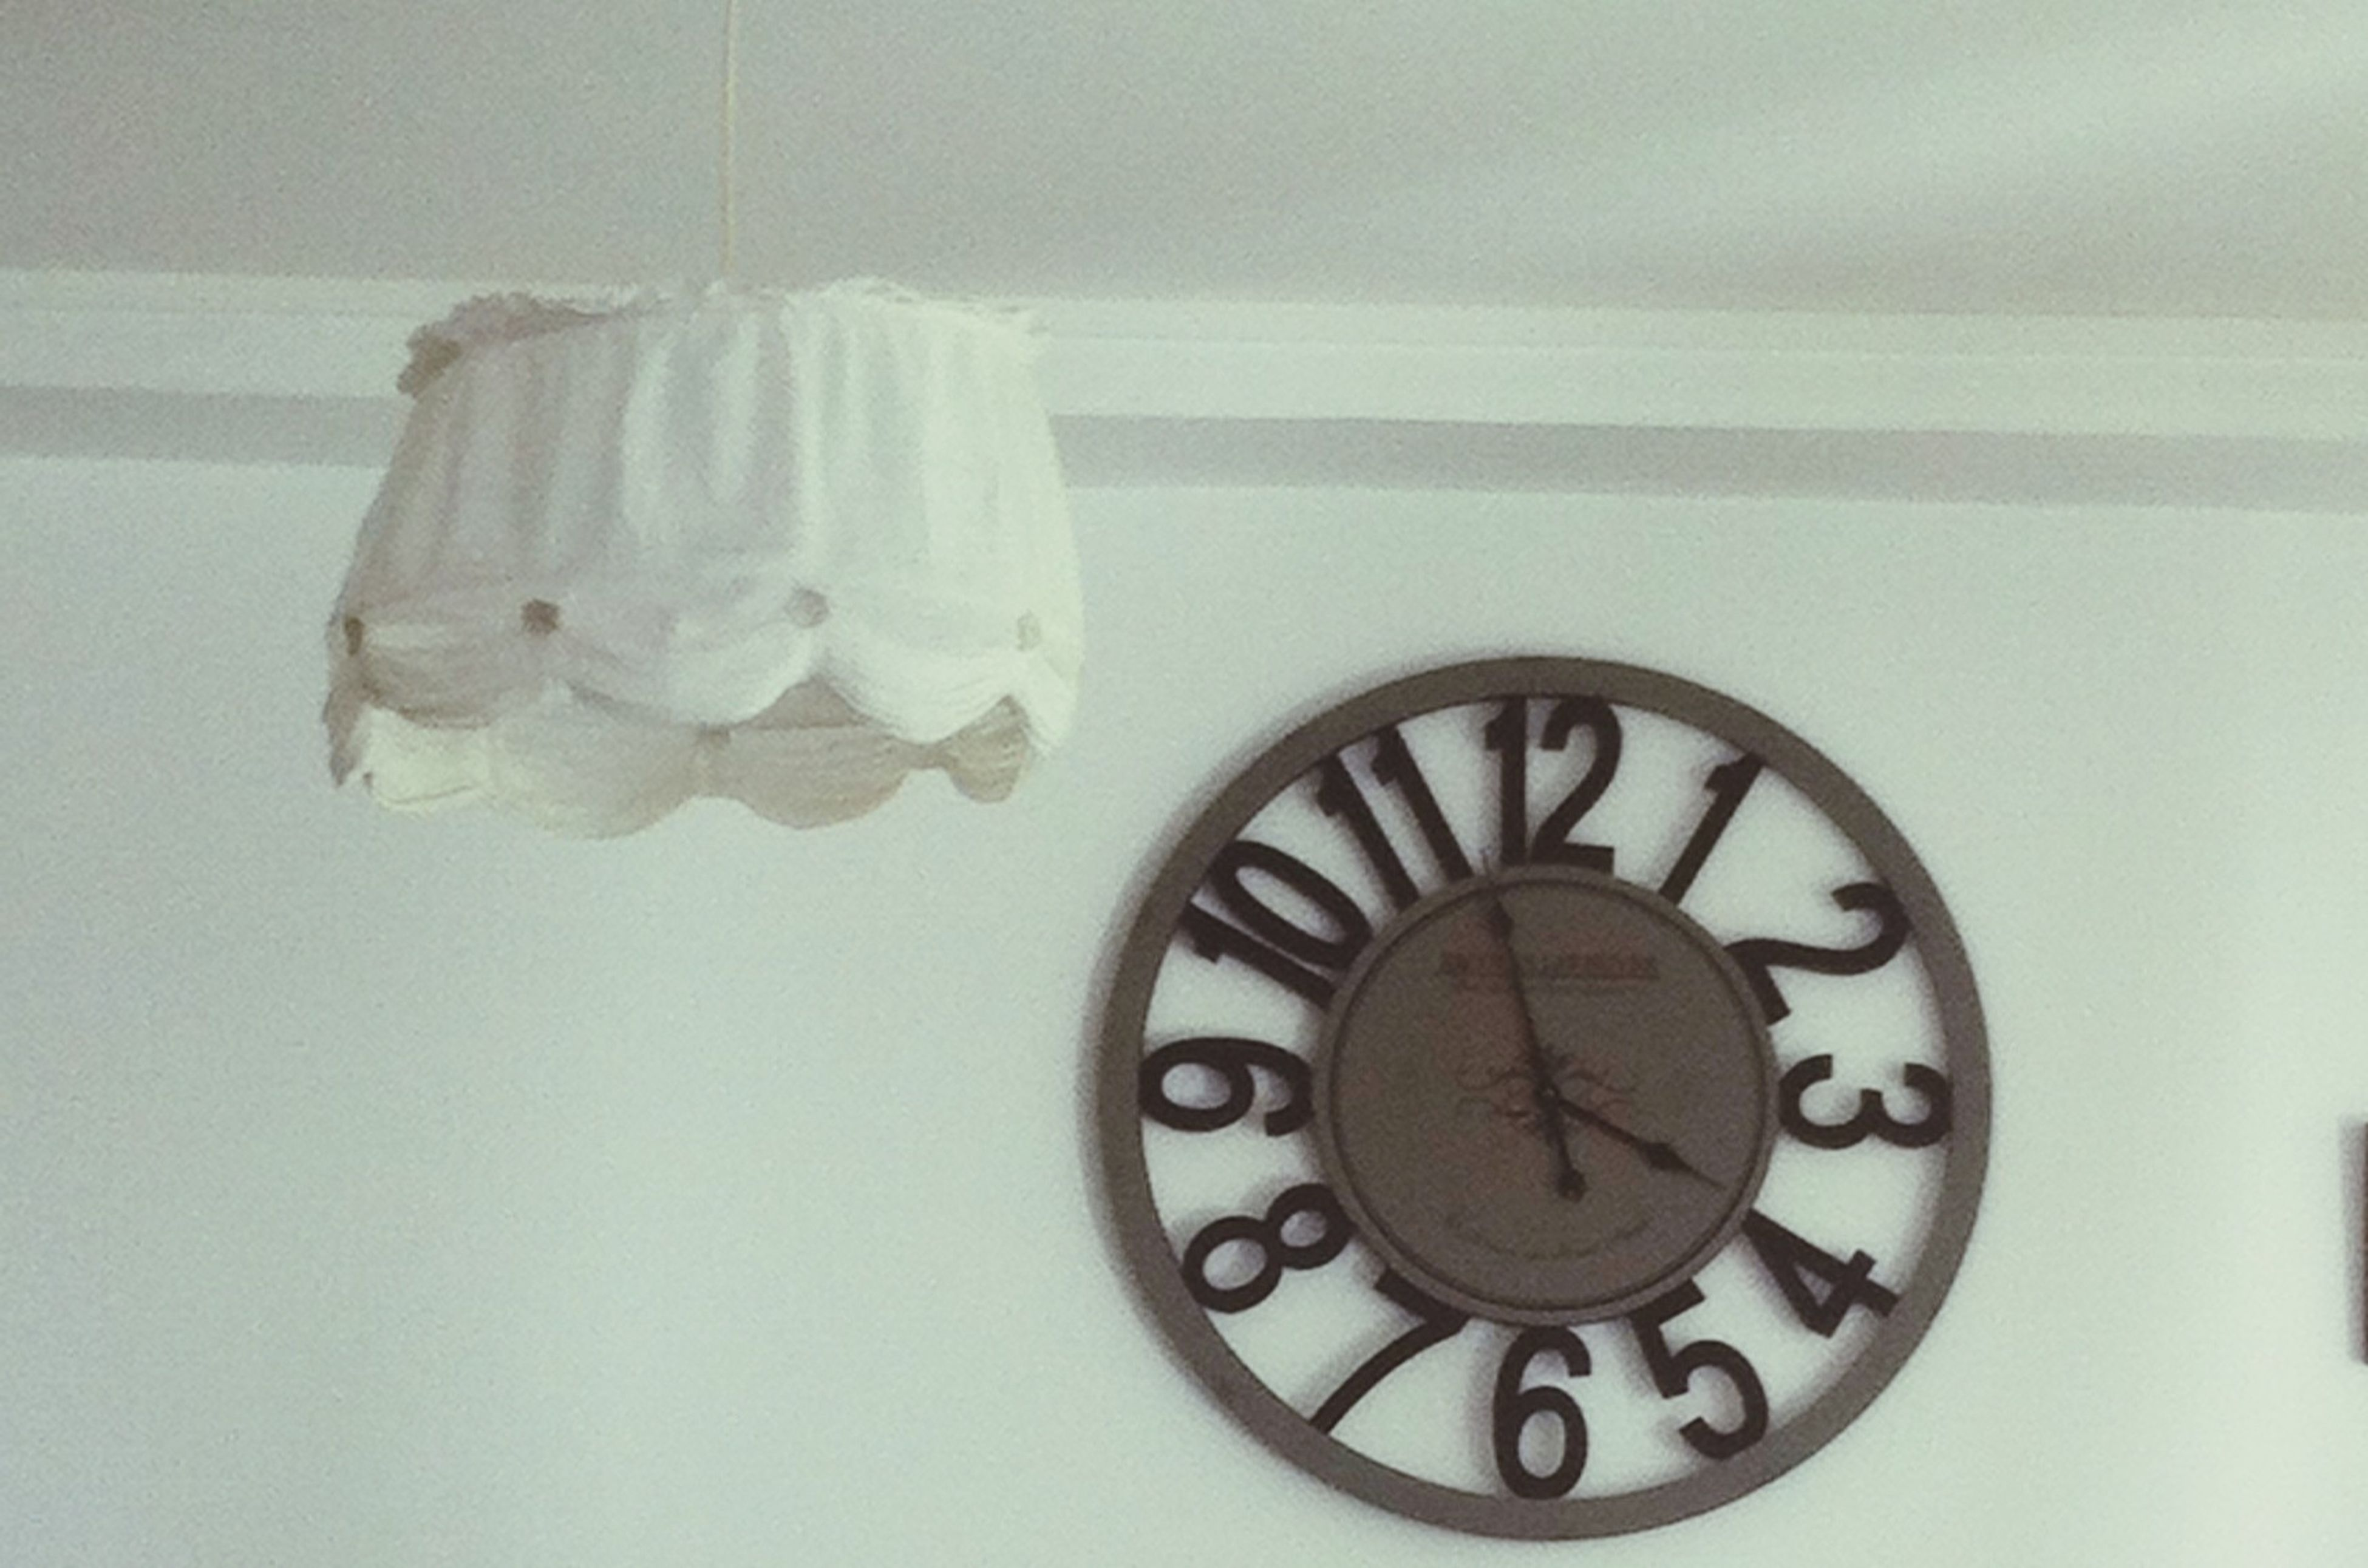 indoors, still life, wall - building feature, table, close-up, home interior, no people, old-fashioned, clock, white color, high angle view, domestic bathroom, single object, bathroom, wall, directly above, technology, time, metal, circle